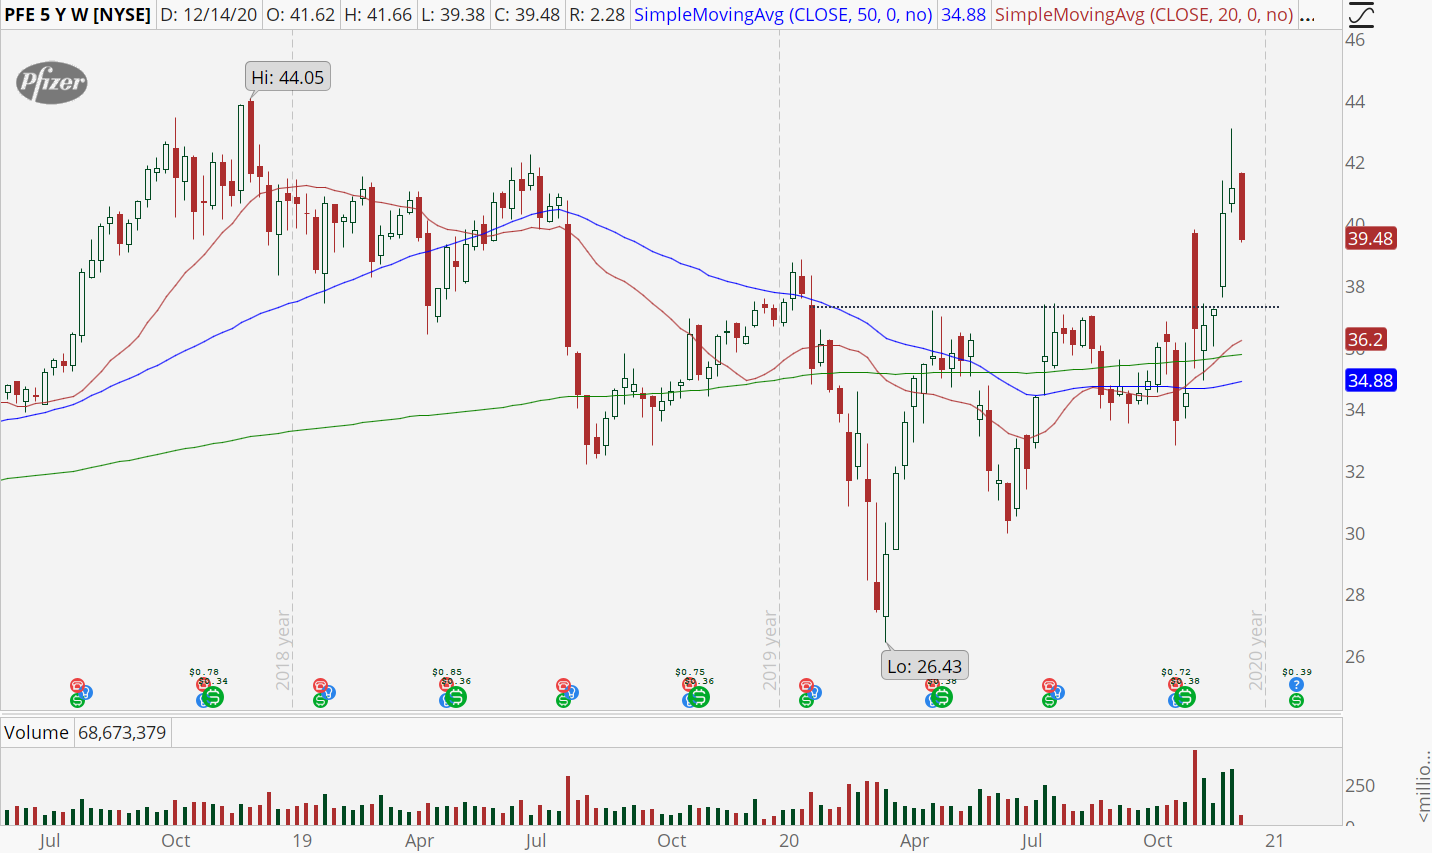 Pfizer (PFE) weekly chart with upside volume surge